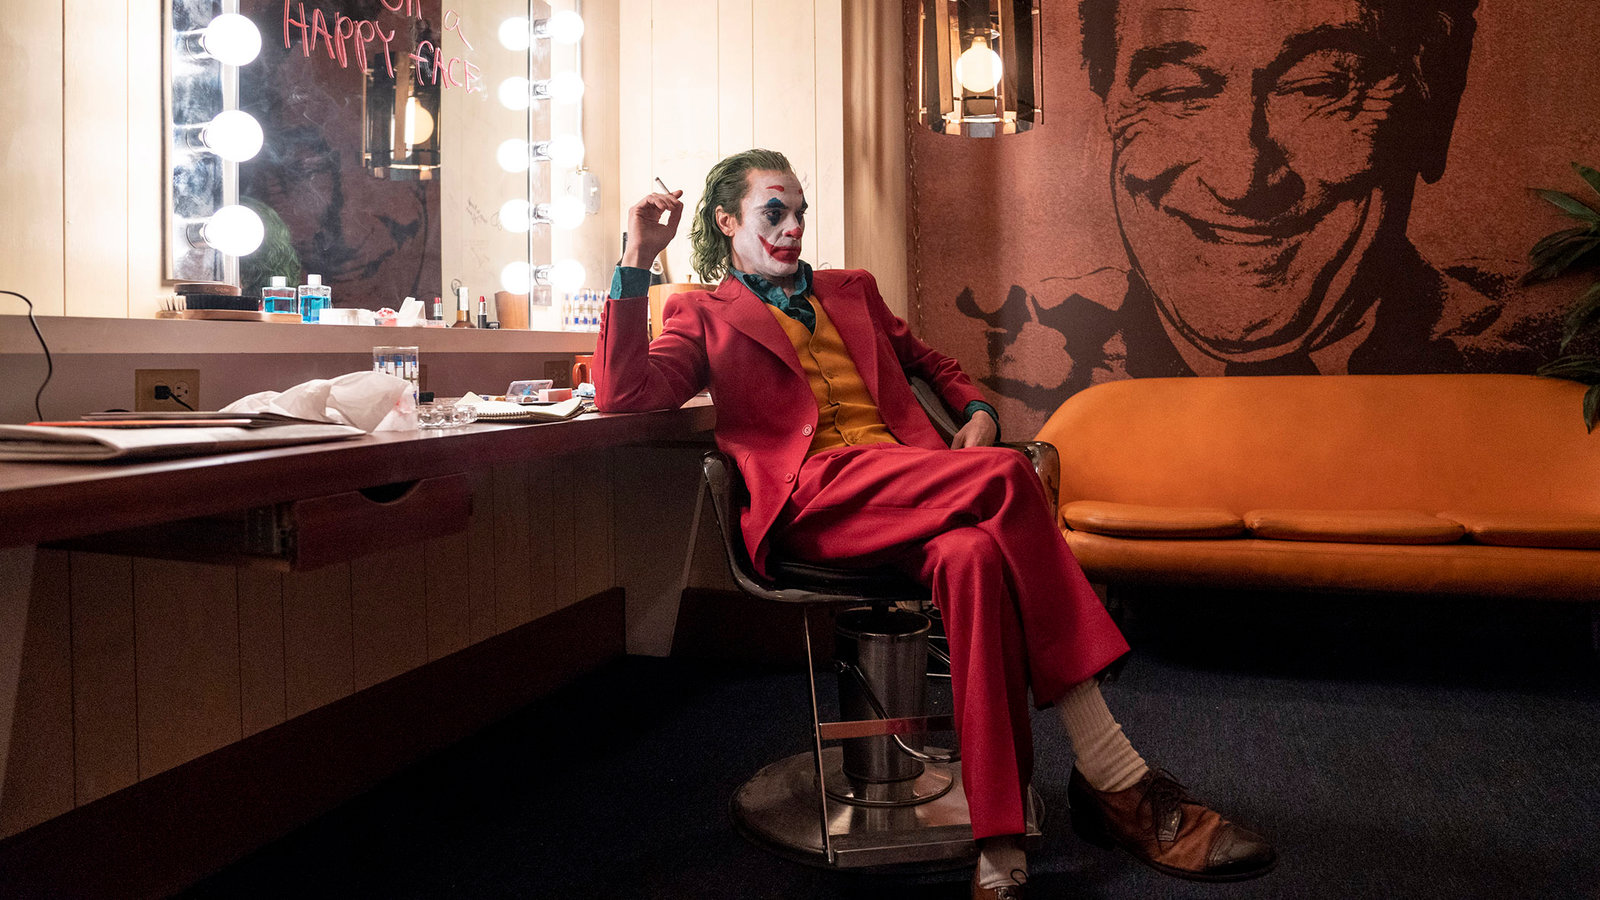 Oscar Nominations 2020: 'Joker' Leads With 11 Nods; Three